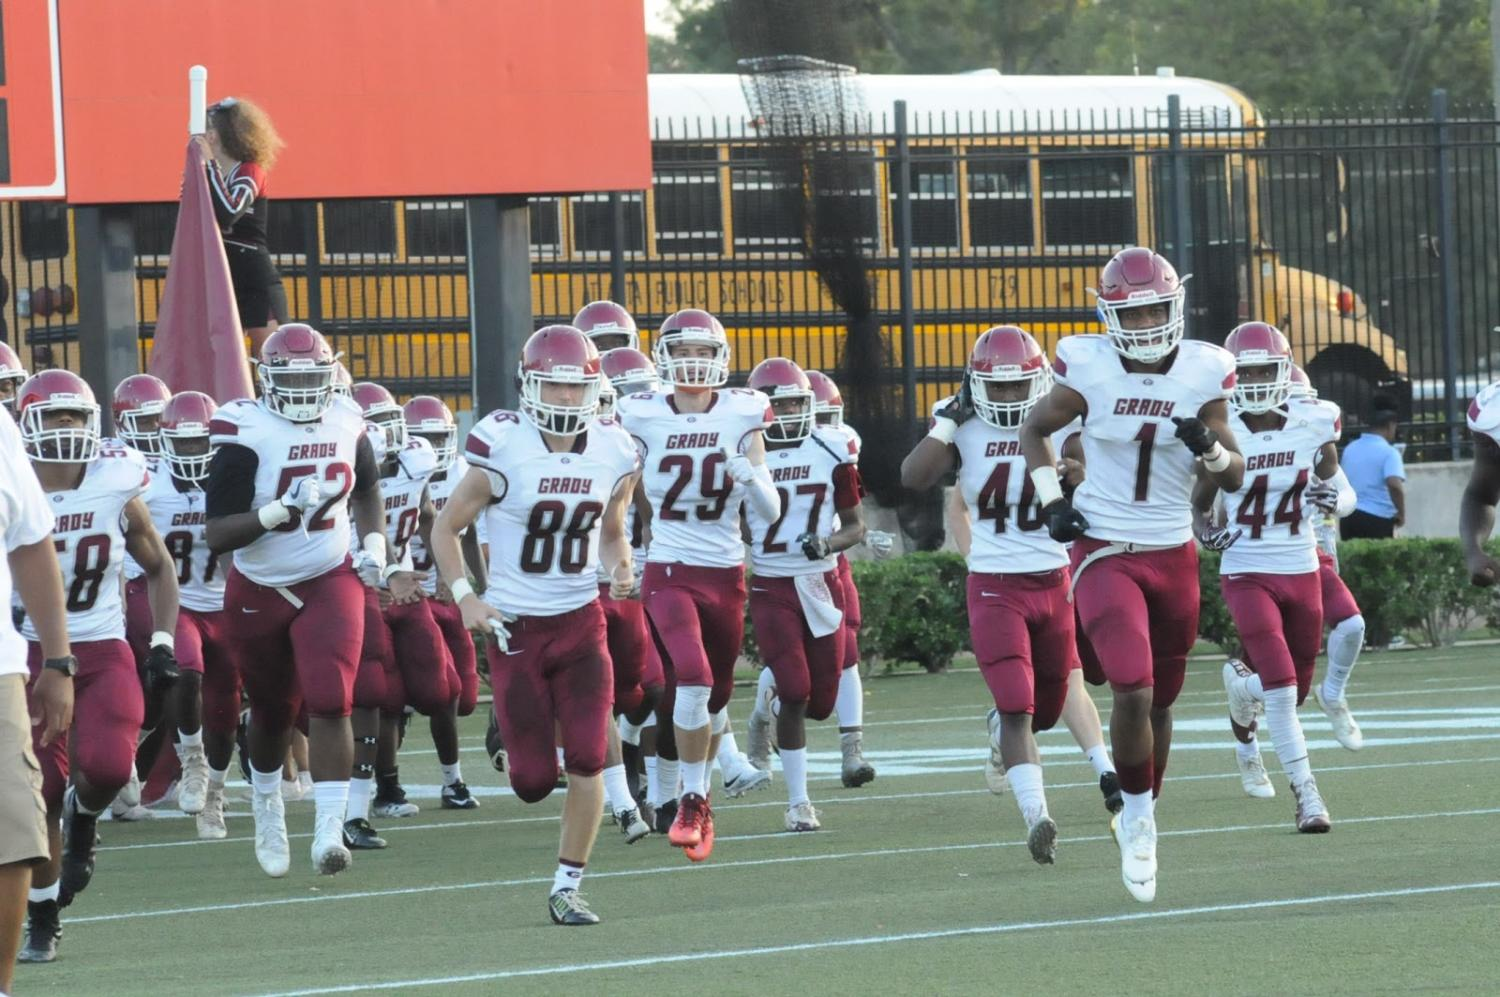 The Grady Knights take the field confidently before their 31-0 loss.